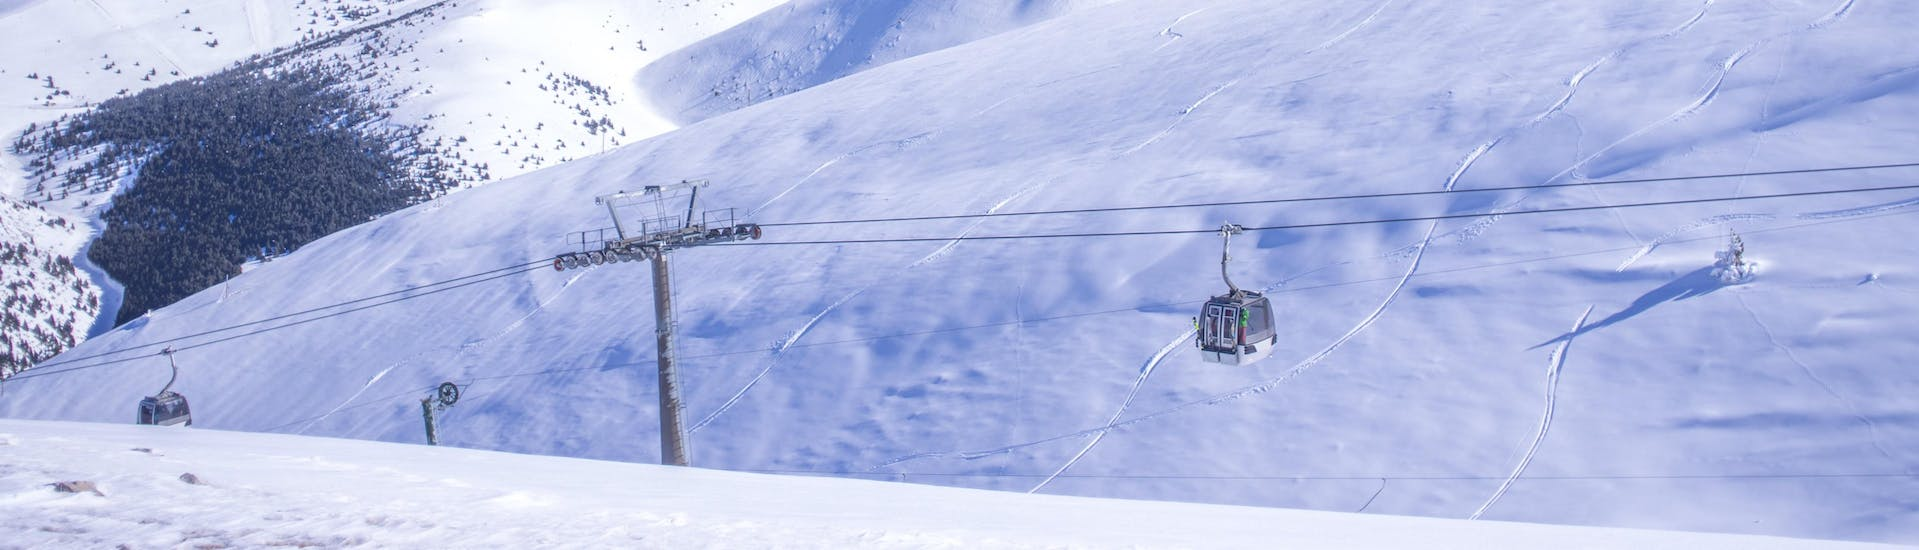 An image of a gondola carrying skiers up to the top of the mountain in the Catalonian ski resort of Masella, where visitors can book ski lessons with one of the local ski schools.